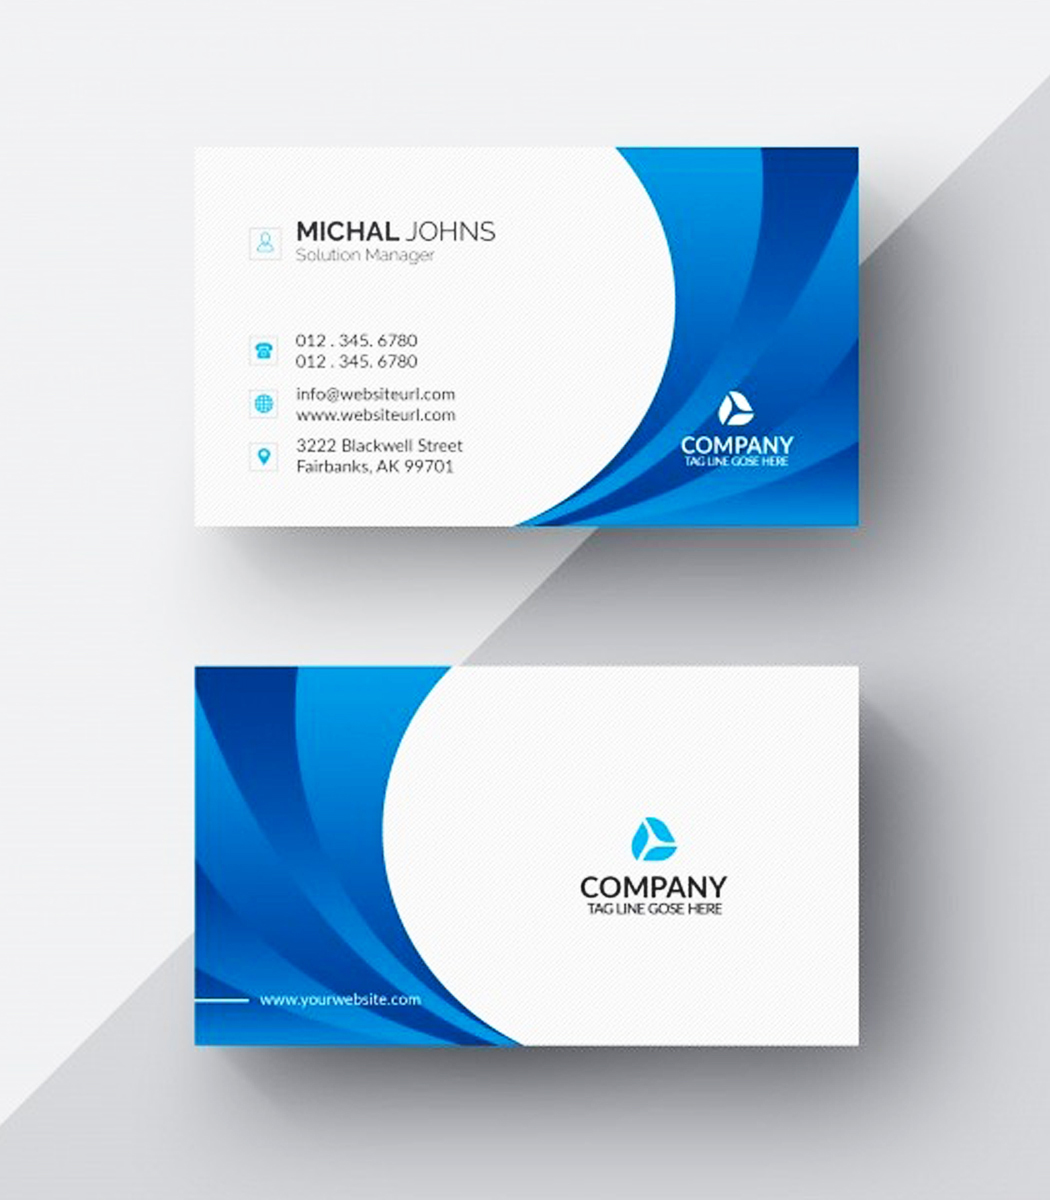 Visiting Card Printing In Tirupur Designing Printer Services Tiruppur